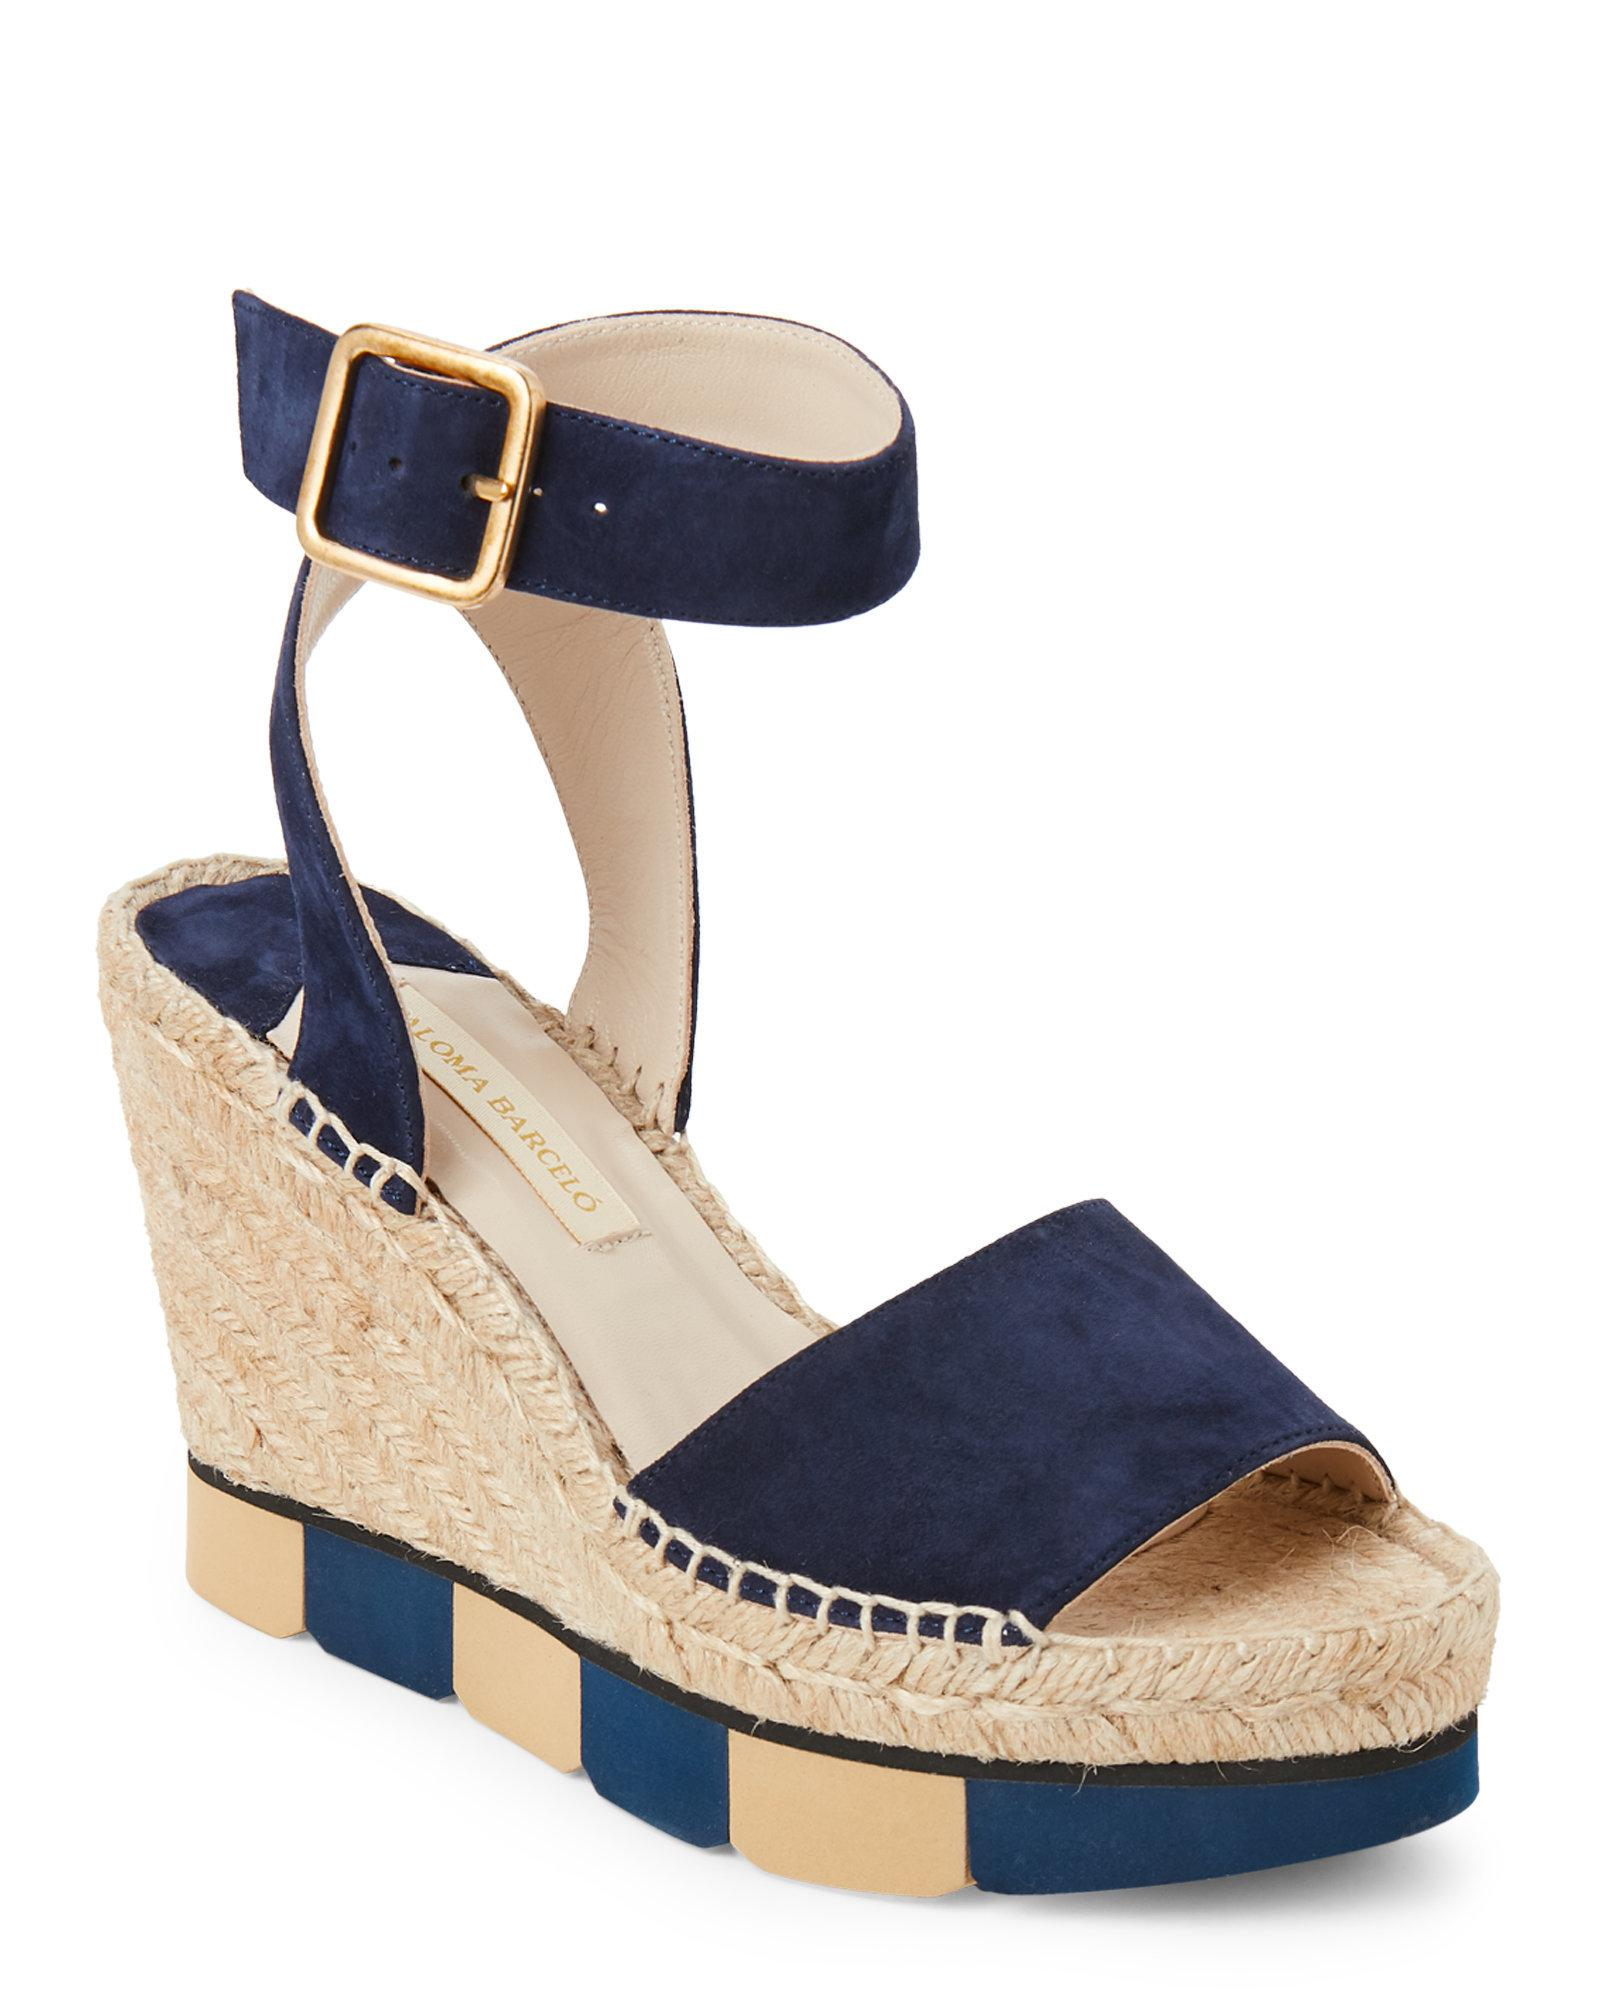 813e1b4864b0 Lyst - Paloma Barceló Navy Lisette Suede Wedge Espadrilles in Blue